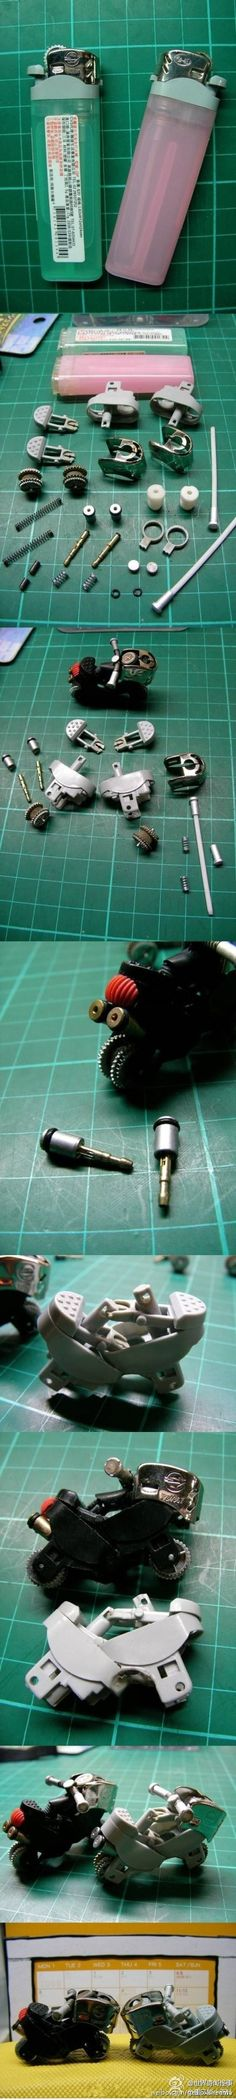 Next time we finish a lighter, so making this motorcycle!